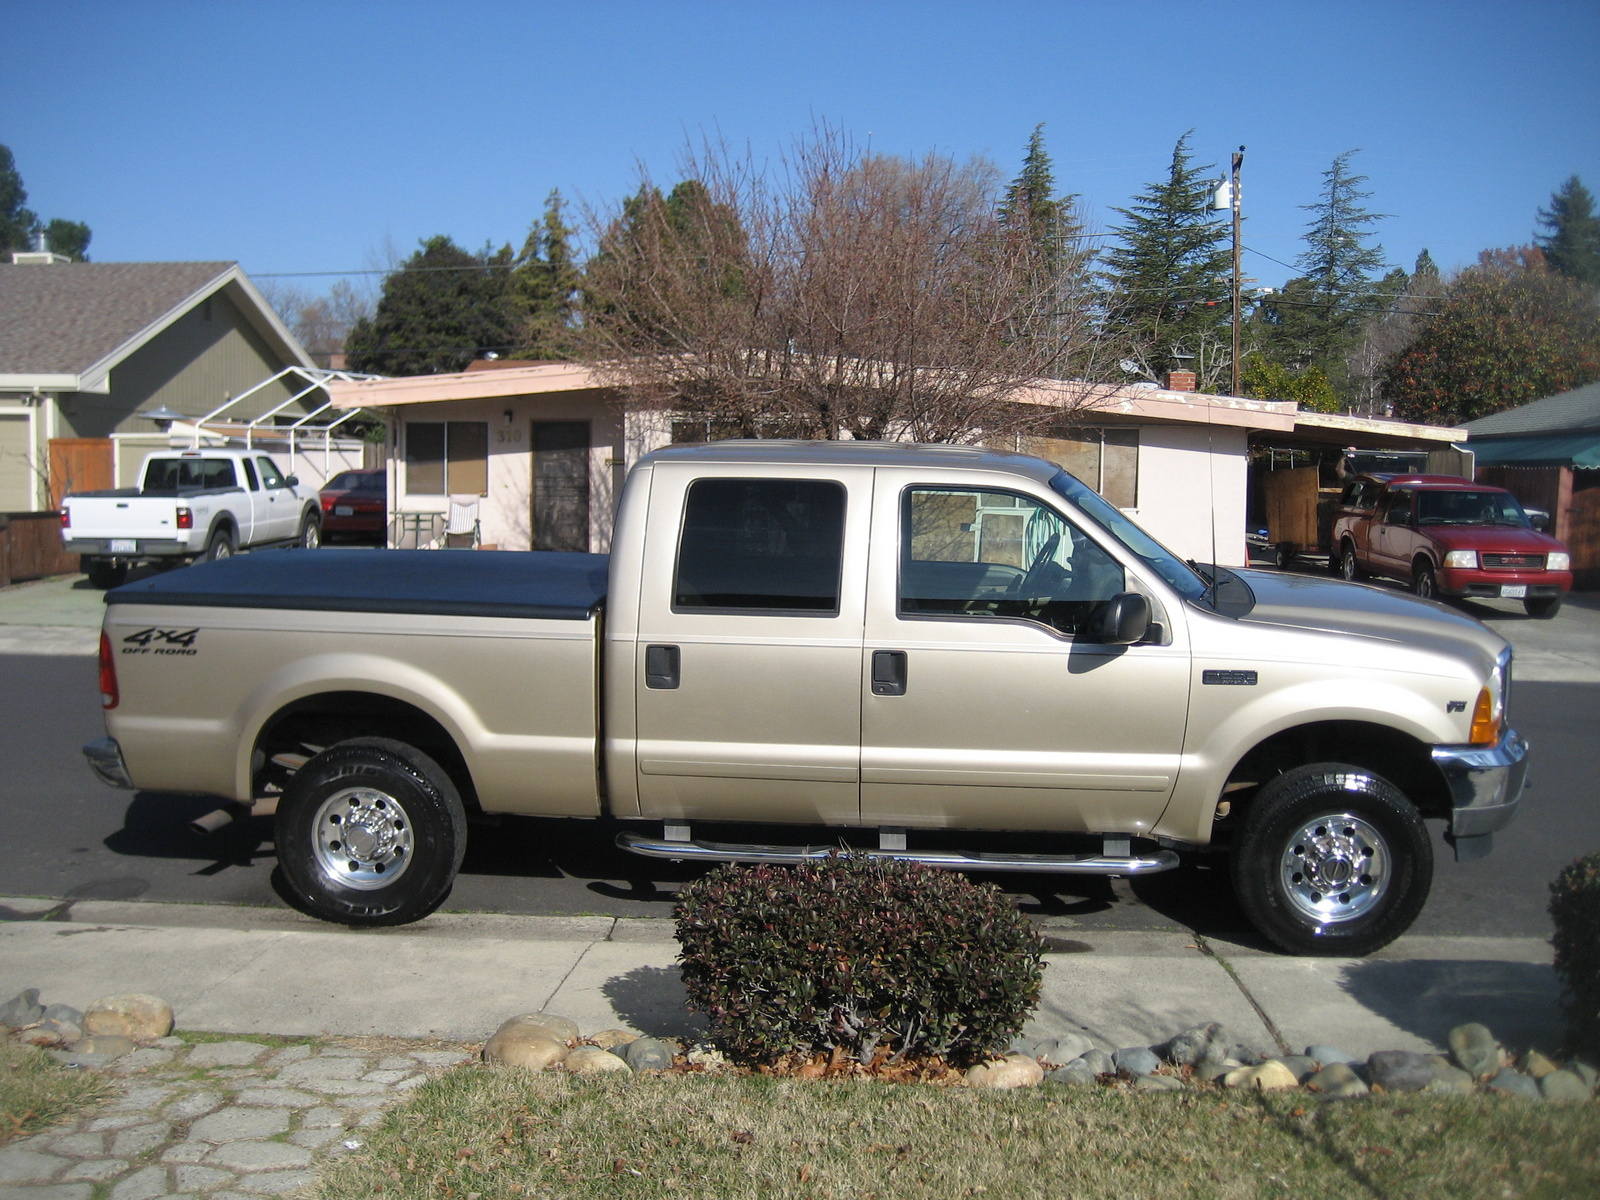 2012 Ford Escape Reviews Consumer Reports Picture of 2001 Ford F-250 Super Duty XLT 4WD Crew Cab SB, exterior